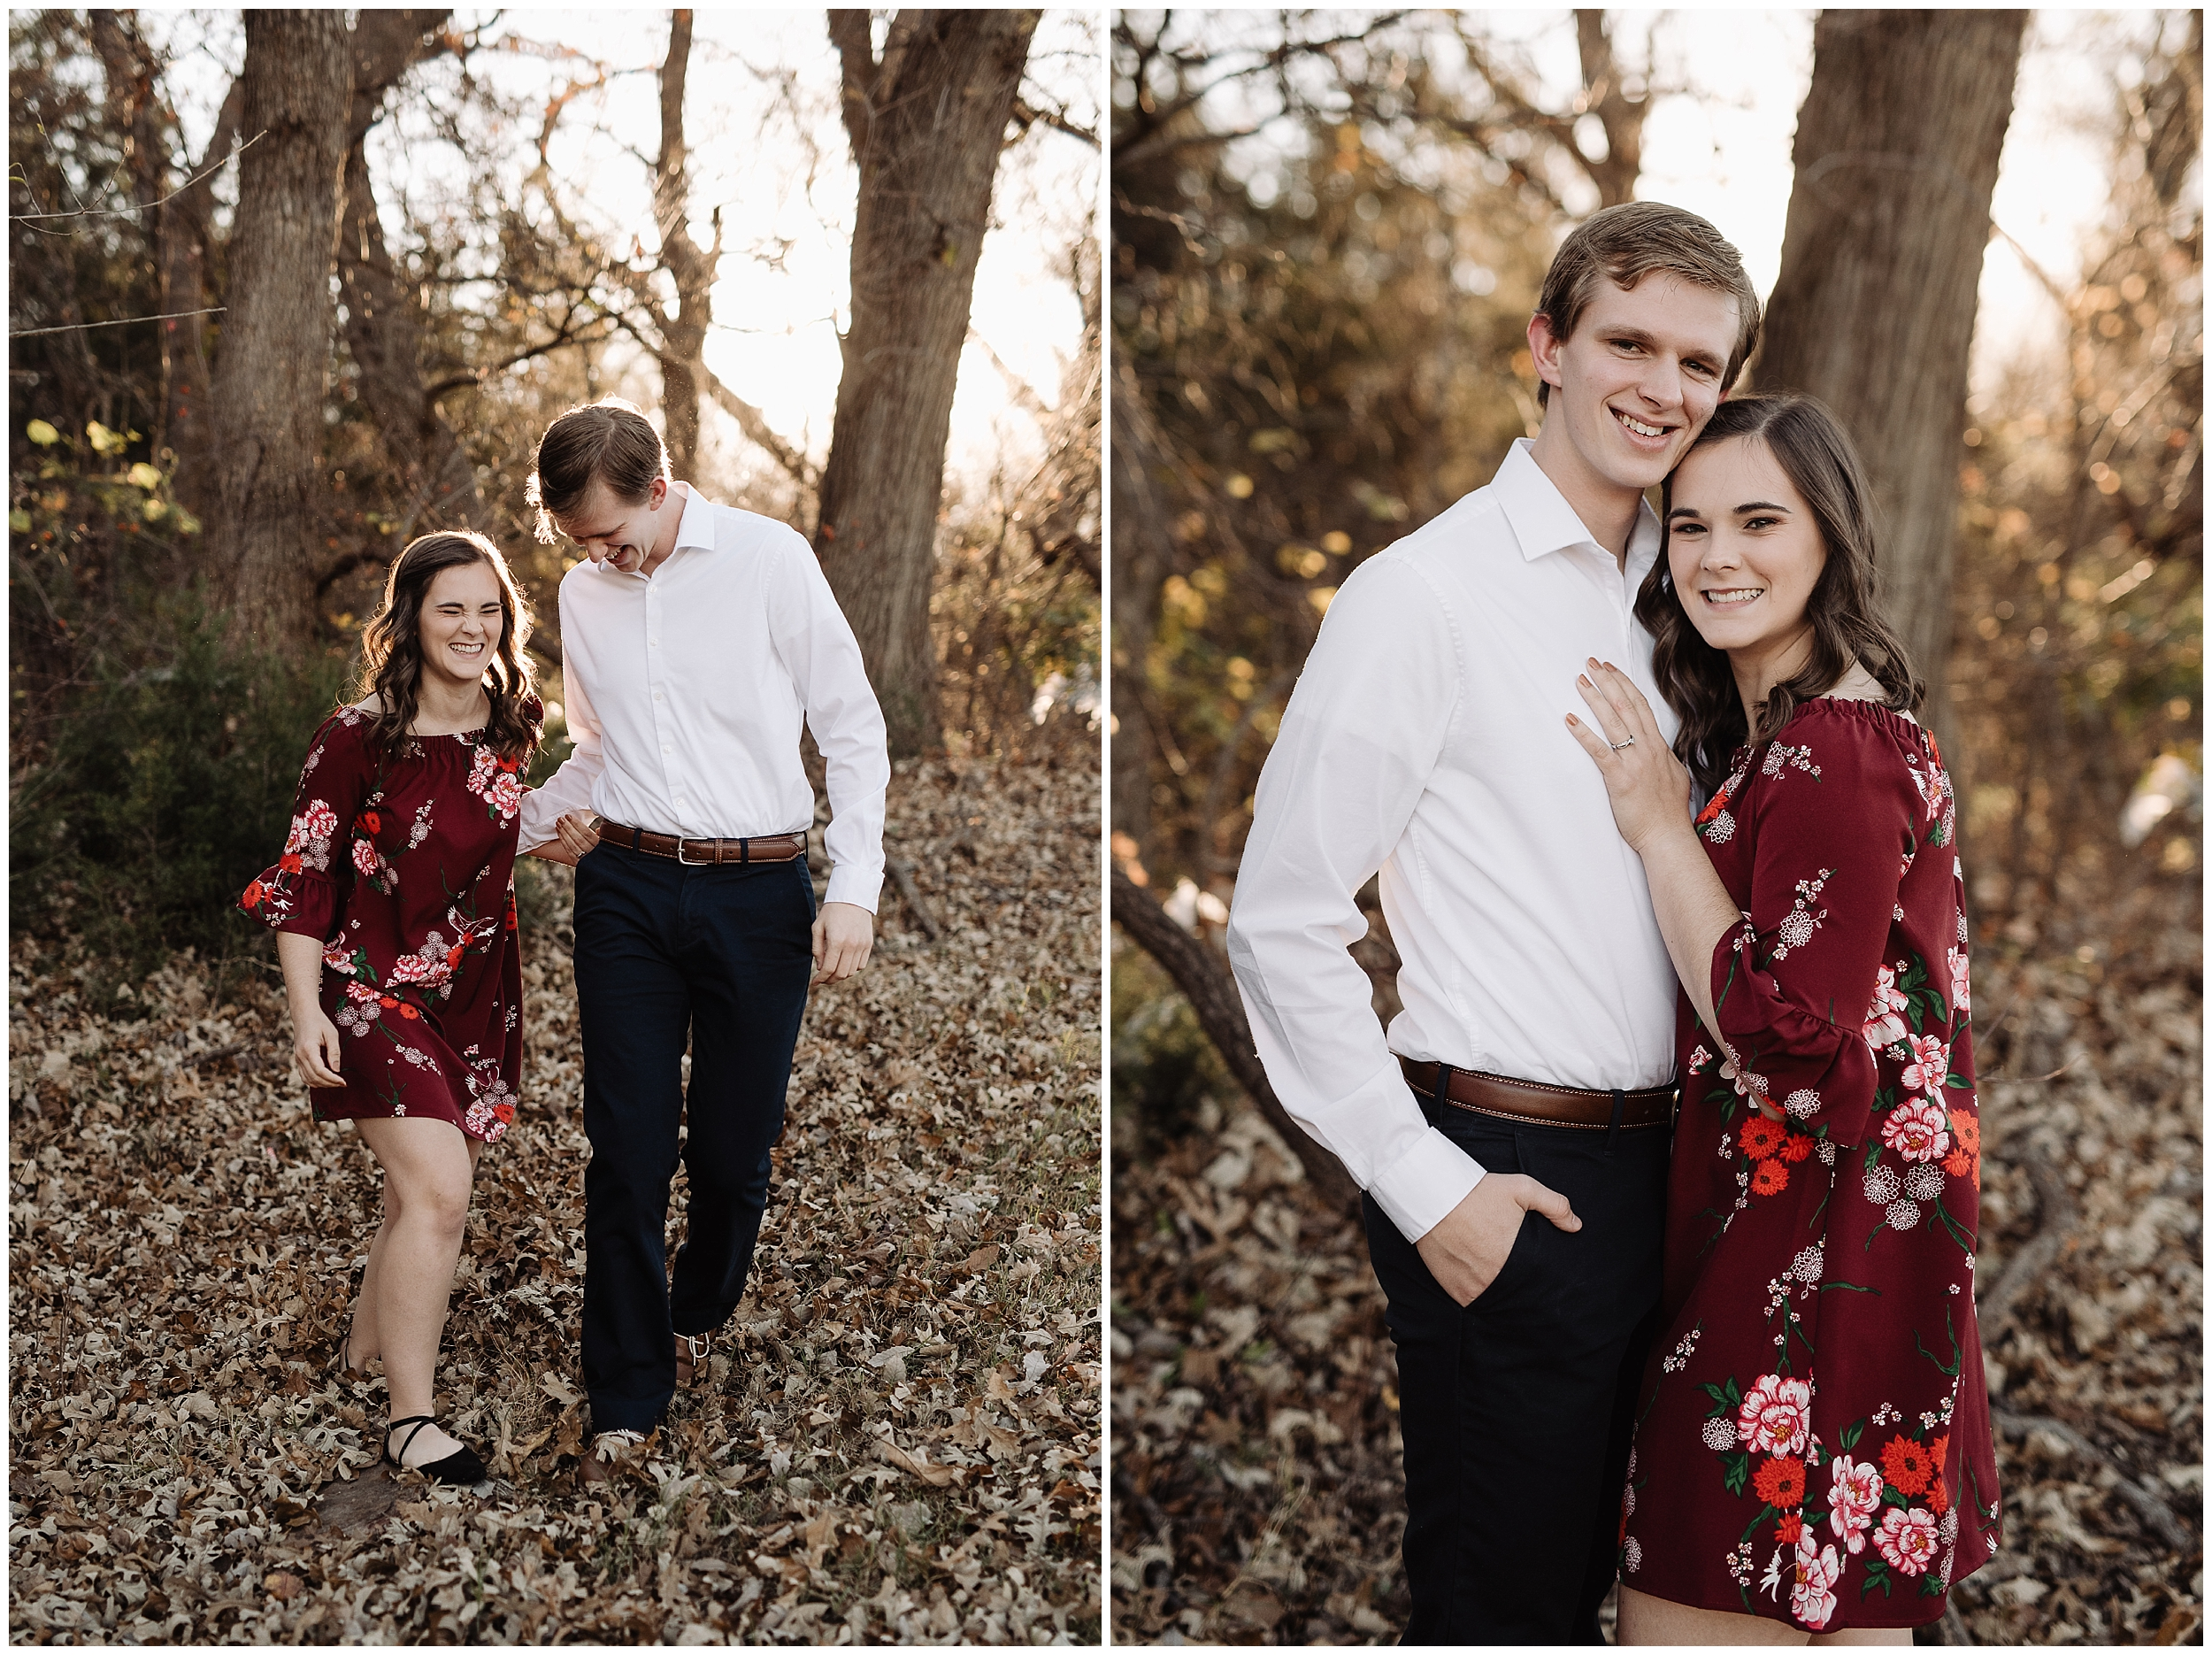 engagement photos session oklahoma wedding photographer outdoors fall edmond okc floral dress norman leaves